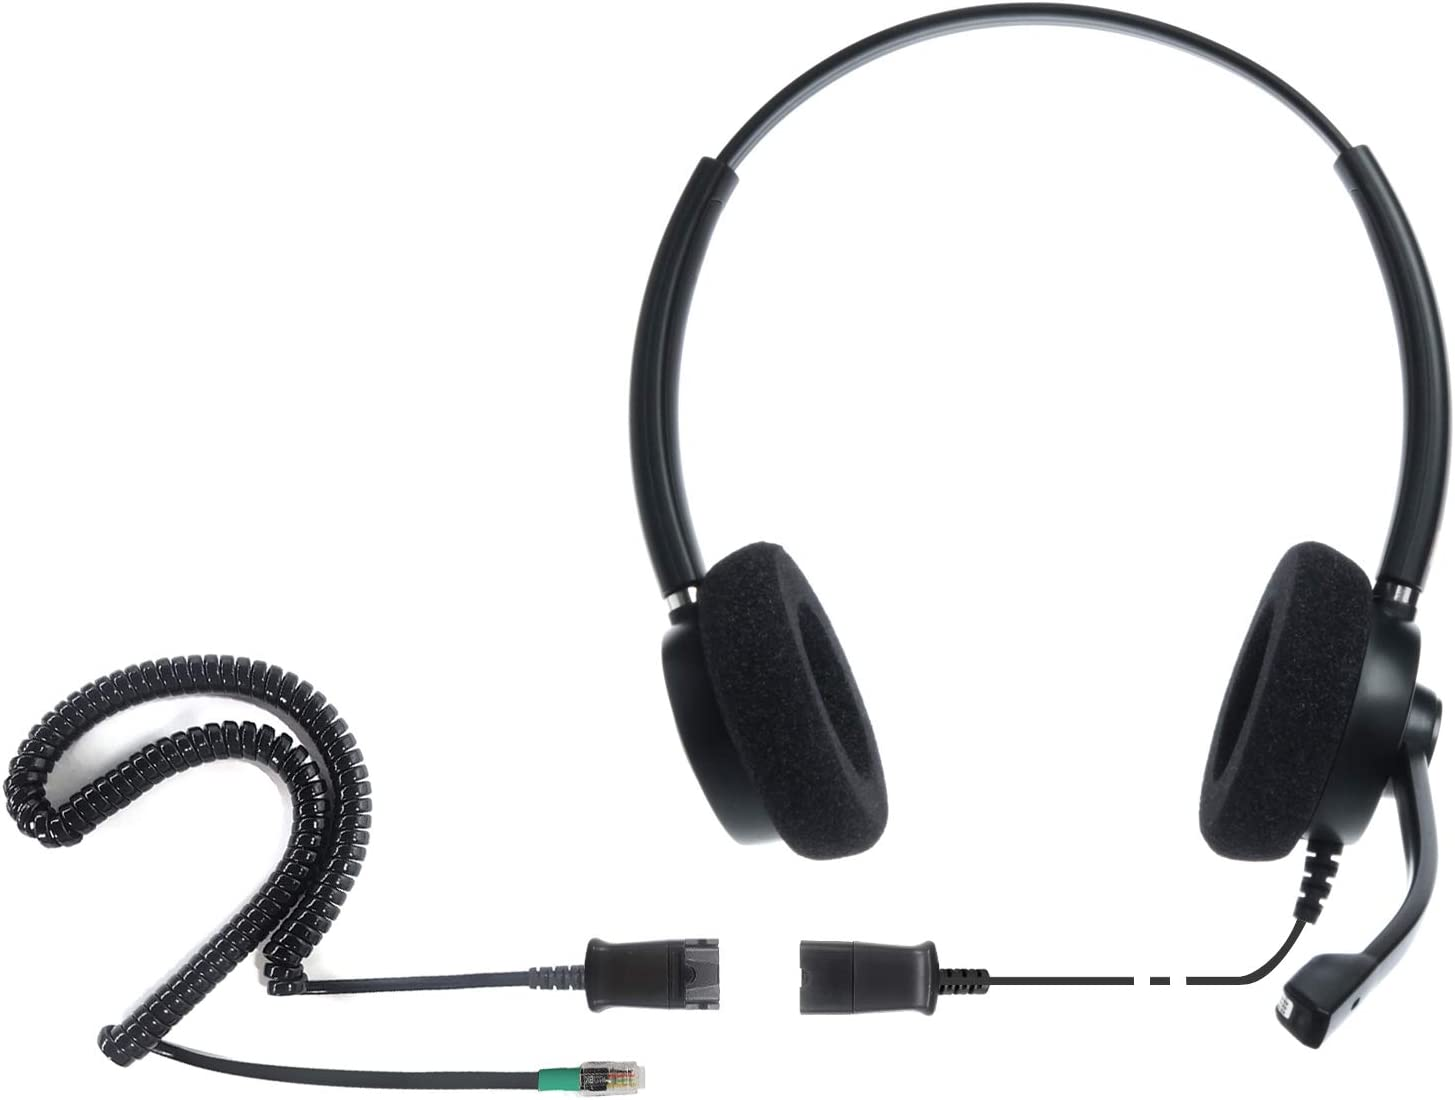 Mitel and Many Other IP Phones Corded Headset for Call Center,Office and Landline Phones w U10P Bottom Cable w RJ9 Jack Works with Poycom VVX,Avaya,Nortel IPD IPH-165 Binaural NC